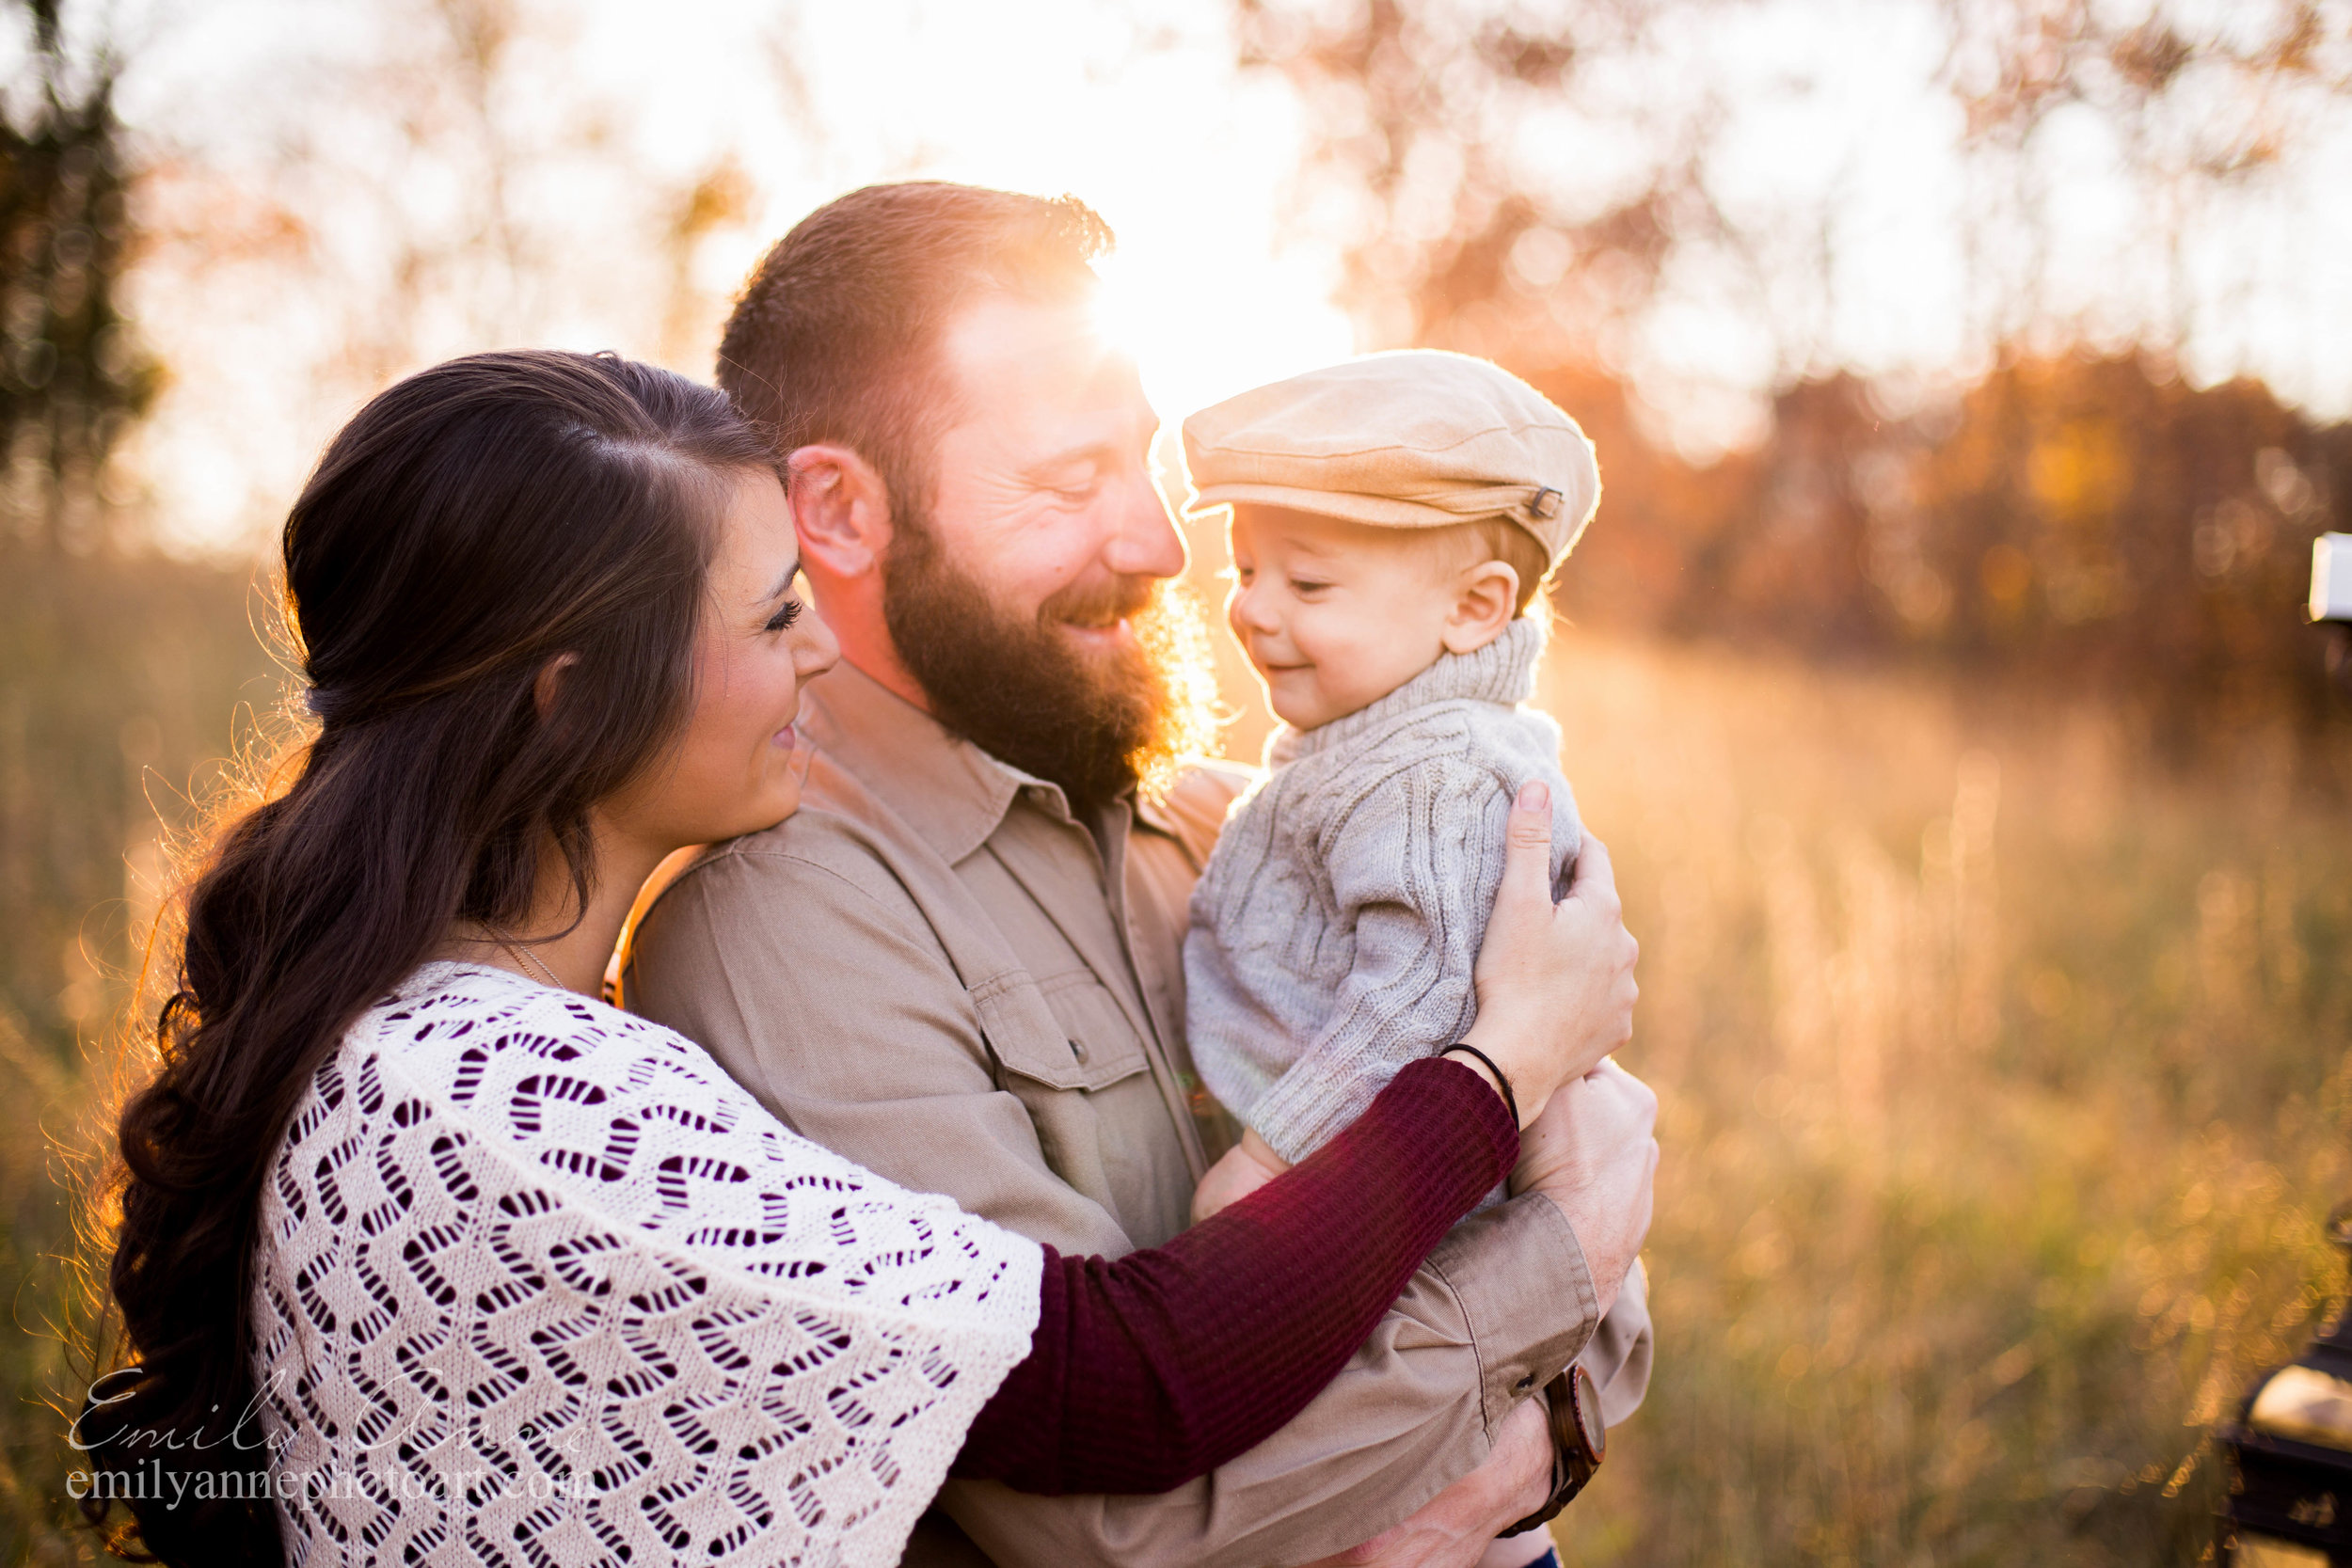 high quality family portrait photographer based in nashville tn brentwood and franklin tn emily anne